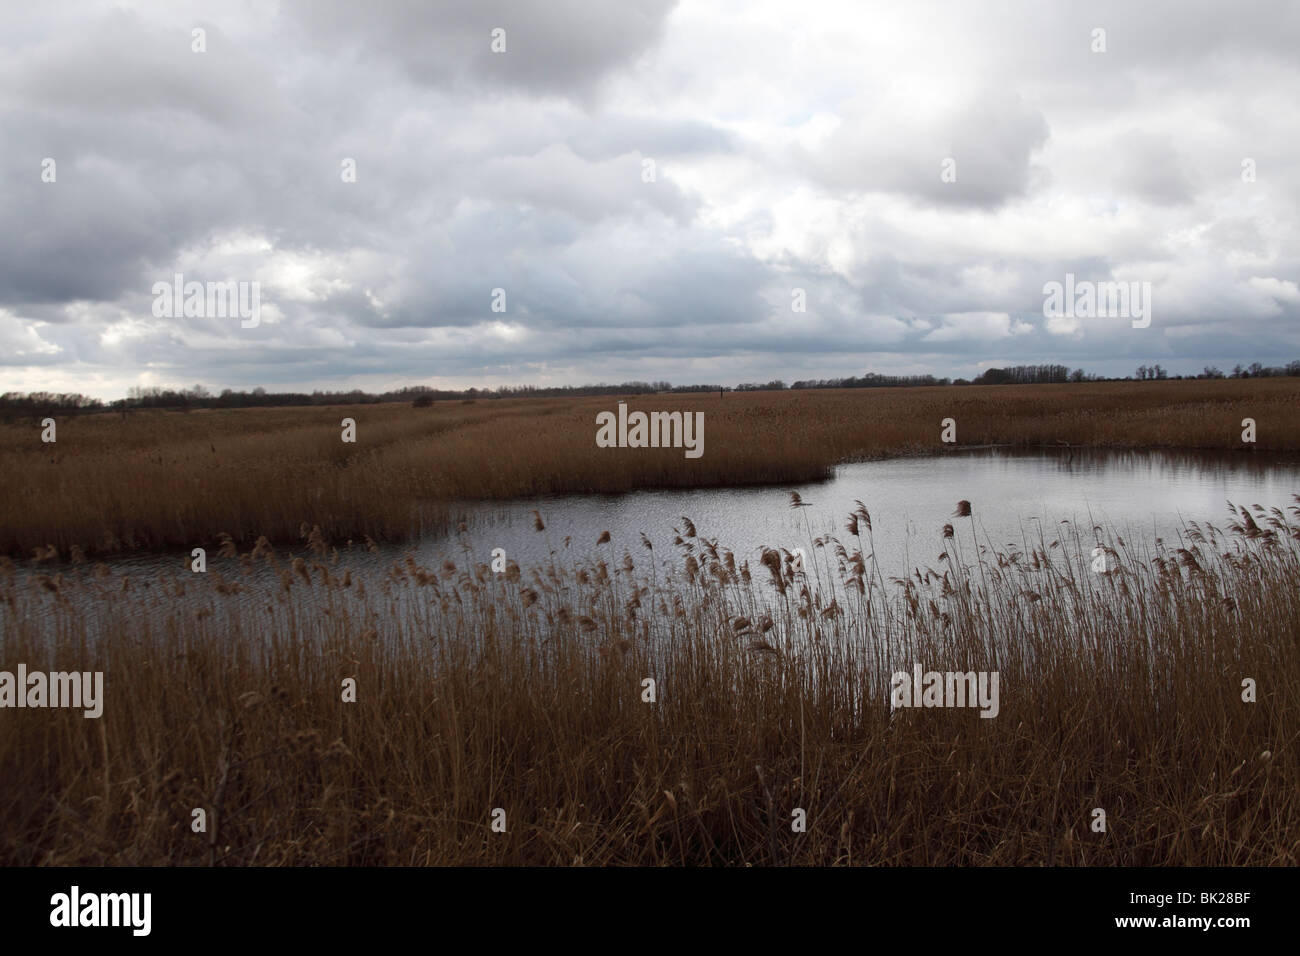 RSPB Lakenheath fen view from Joist viewpoint across reserve Stock Photo